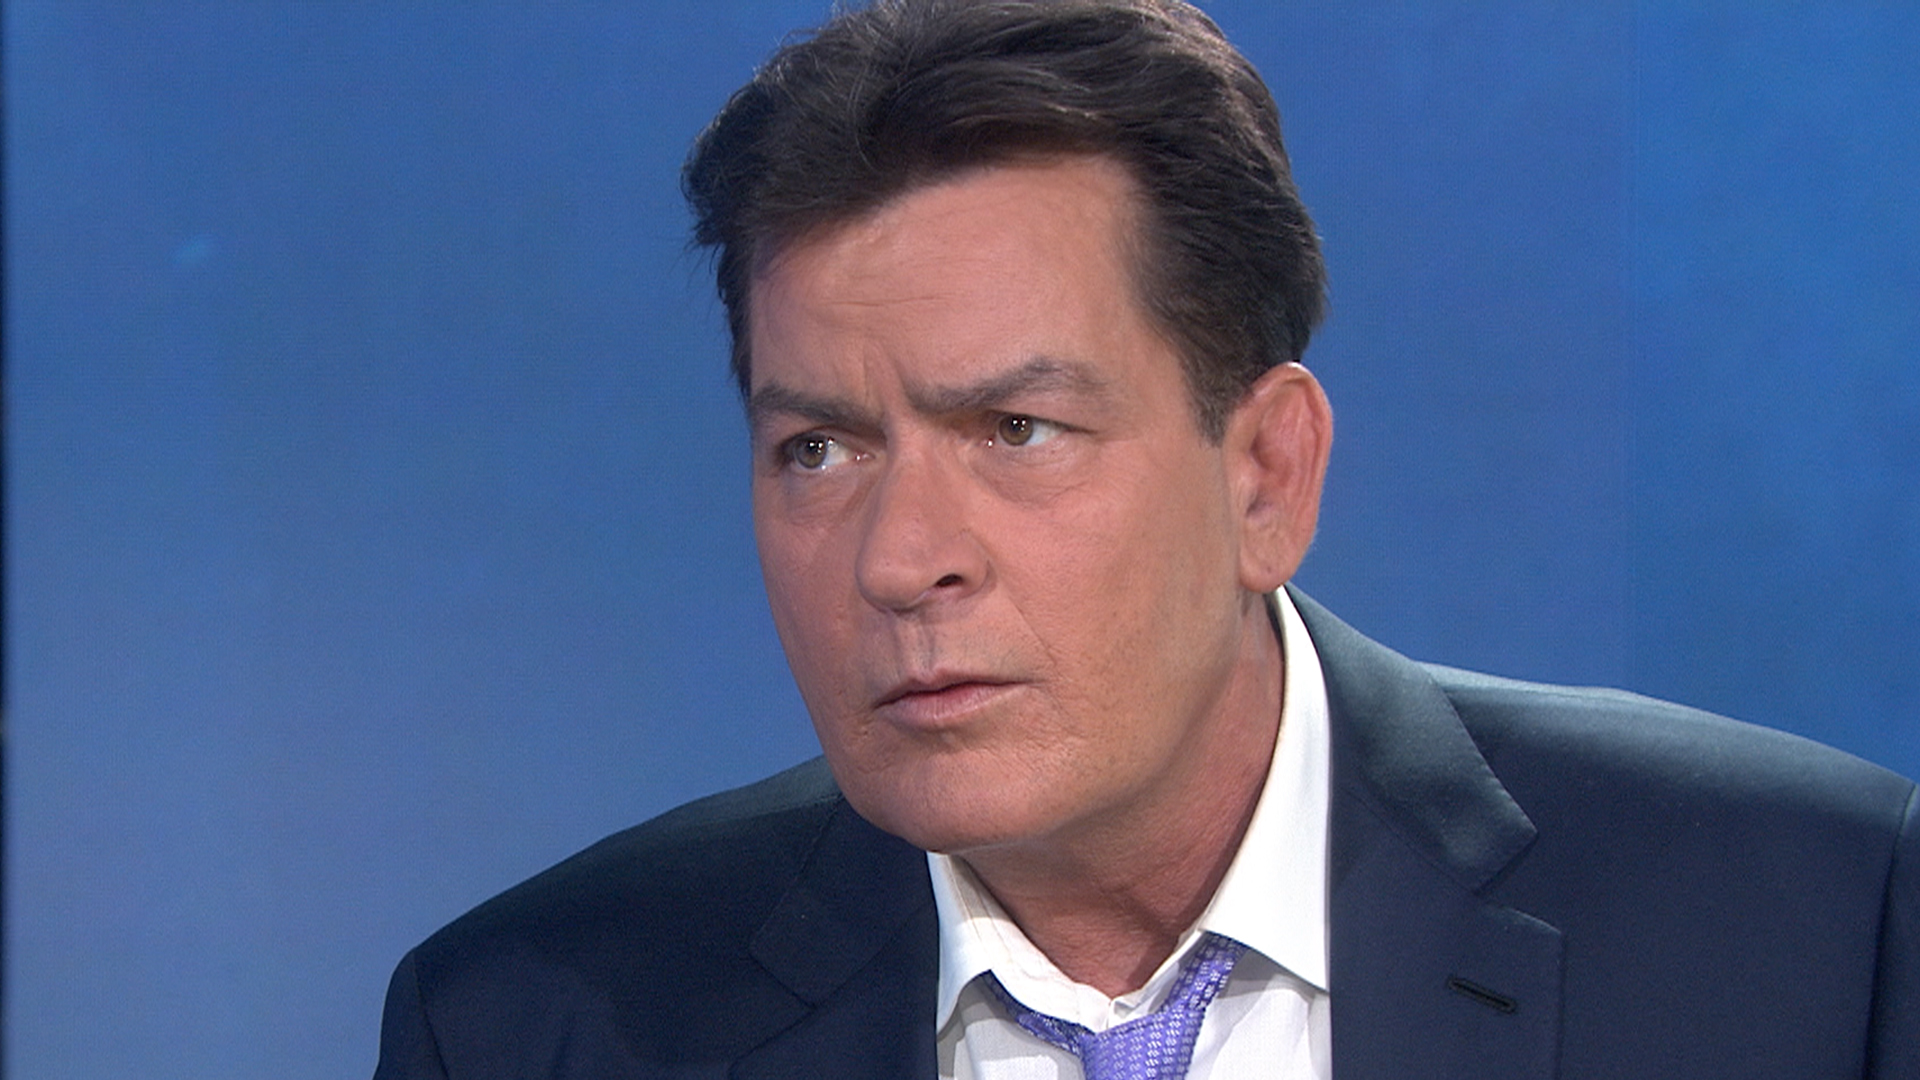 Charlie Sheen: 'I'm HIV Positive,' Paid Many Who Threatened to Expose Me